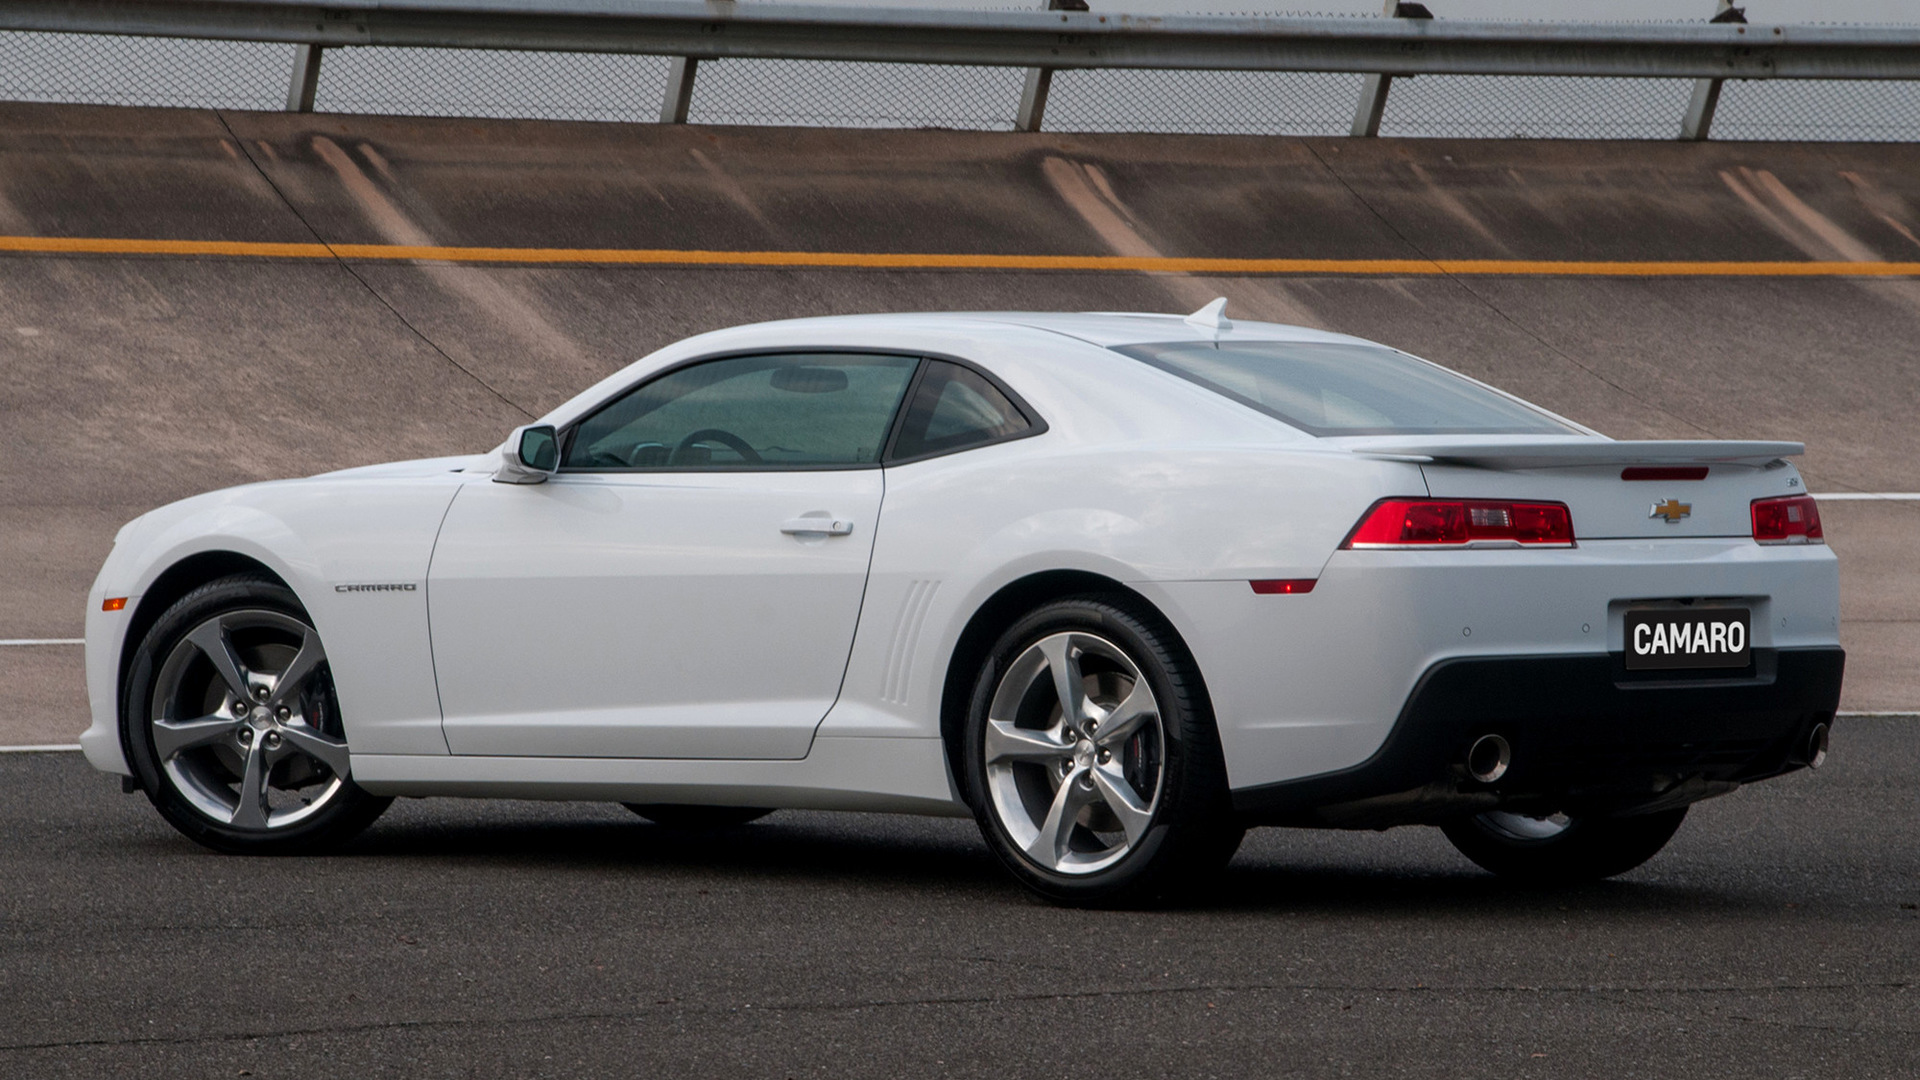 Chevrolet Camaro SS 2014 Wallpapers and HD Images   Car 1920x1080